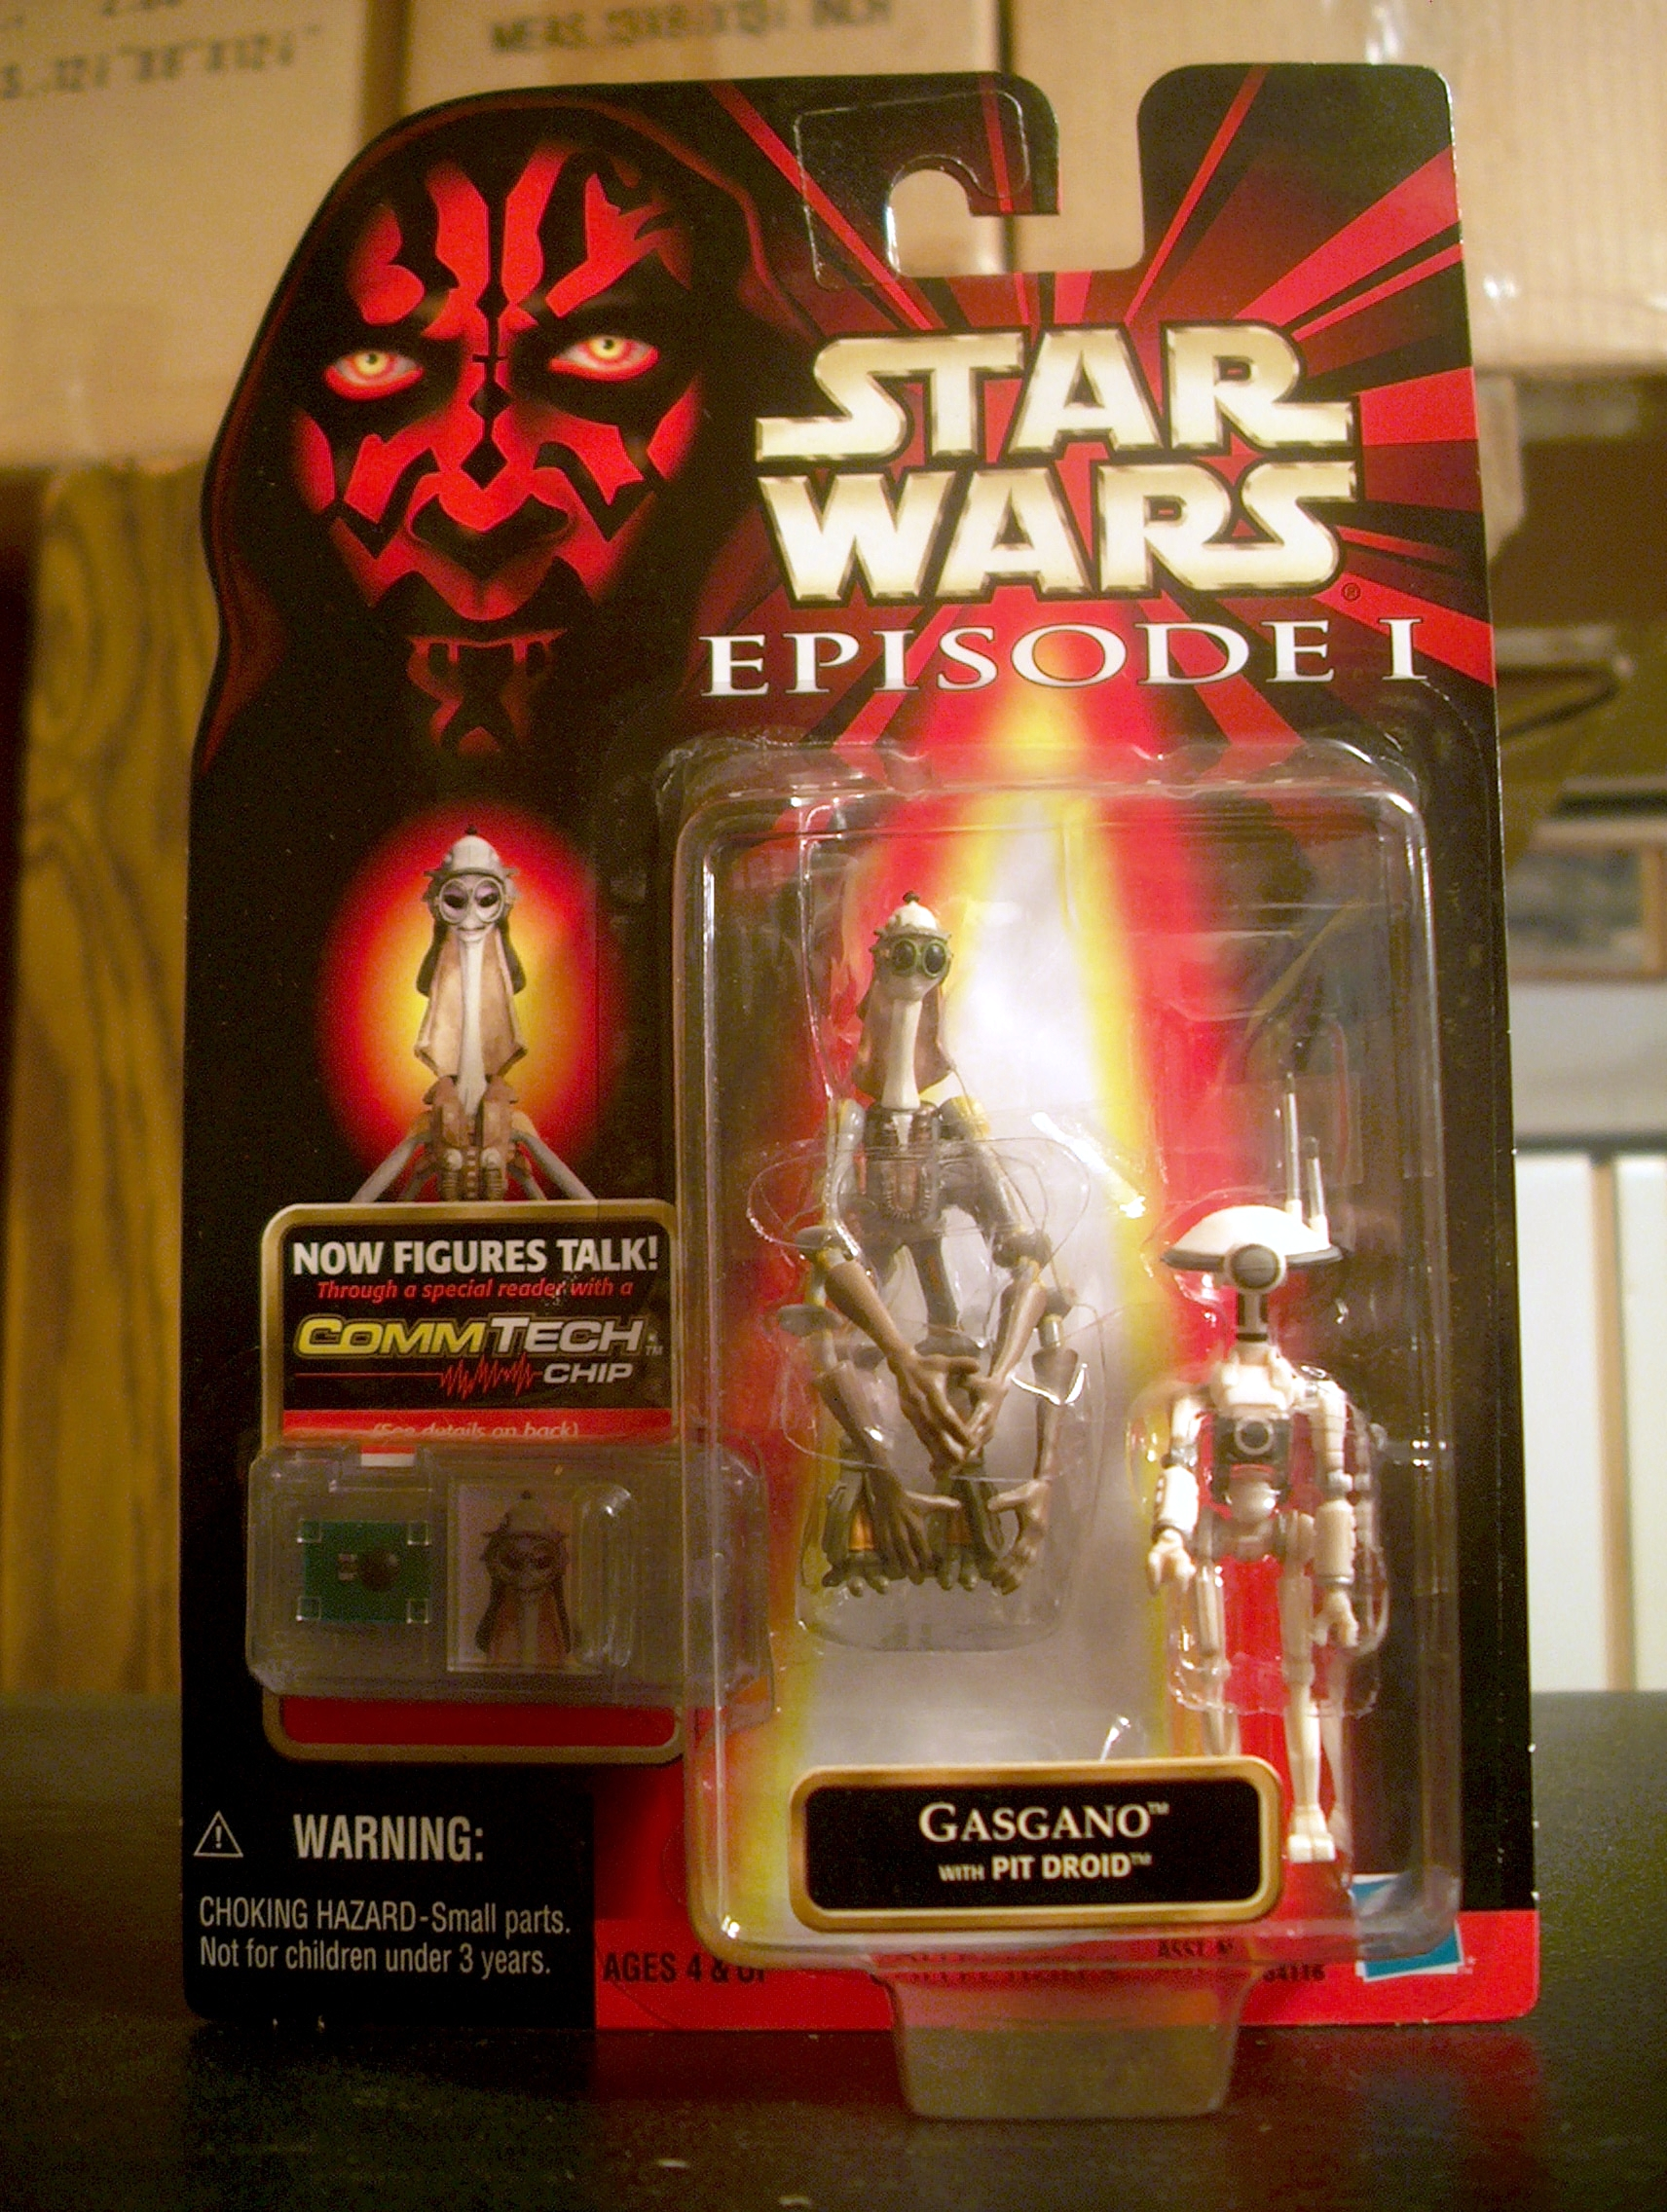 Gasgano with Pit Droid (2-Pack)